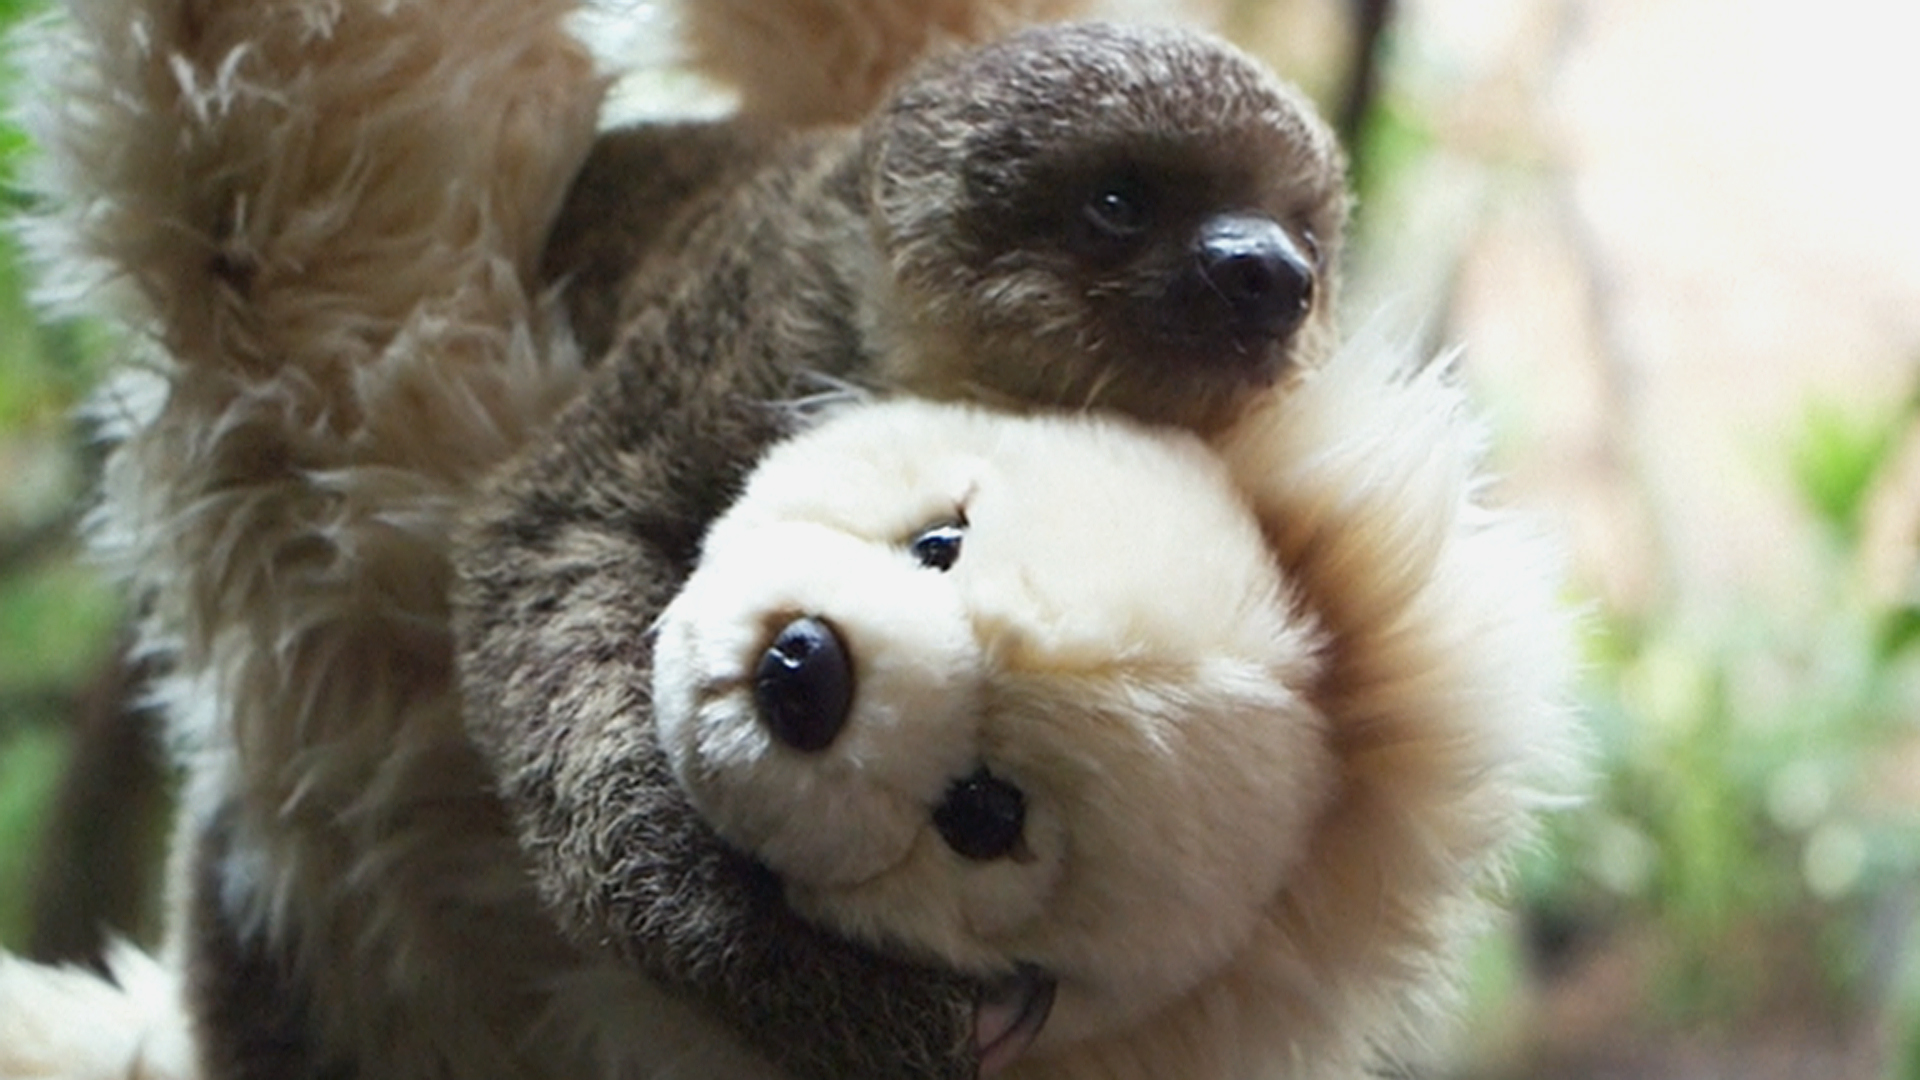 sloth cute baby teddy bear animal giphy mother london gifs nbcnews